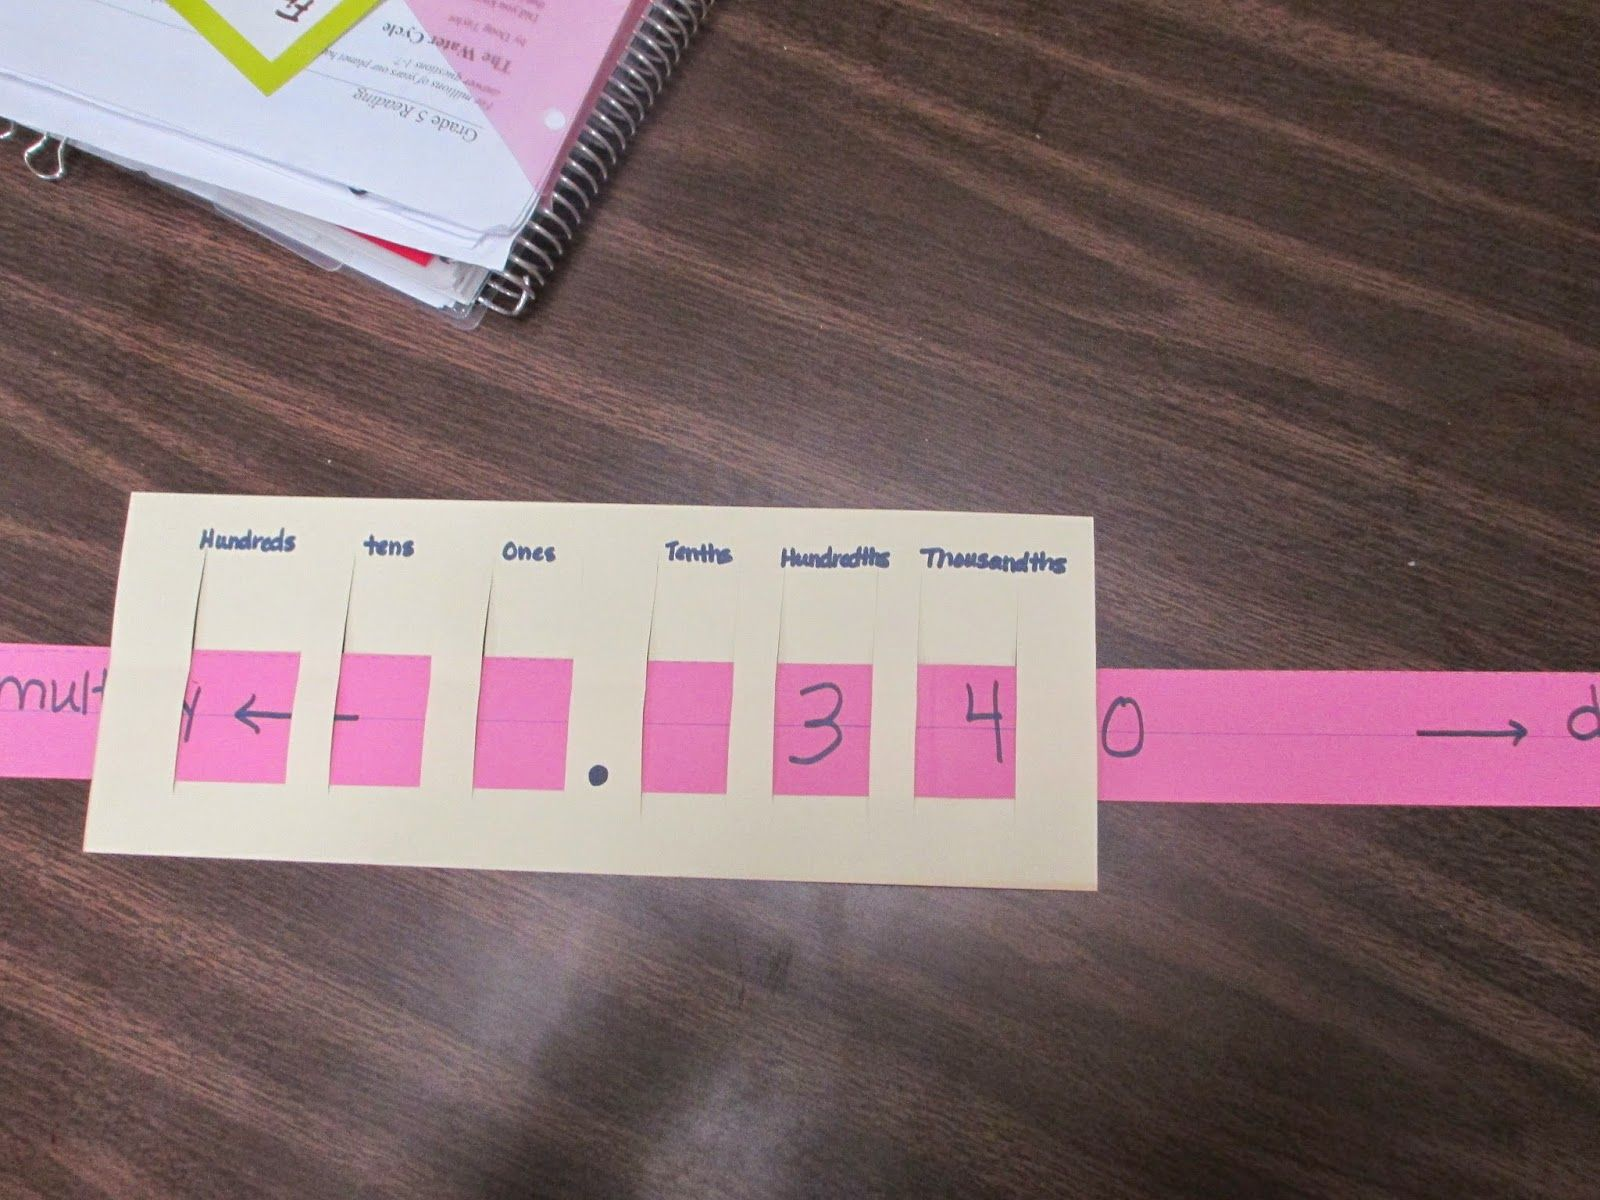 Worksheet Teaching Multiplication Of Decimals 1000 ideas about multiplying decimals on pinterest dividing mathematical mondays tool for by powers of ten